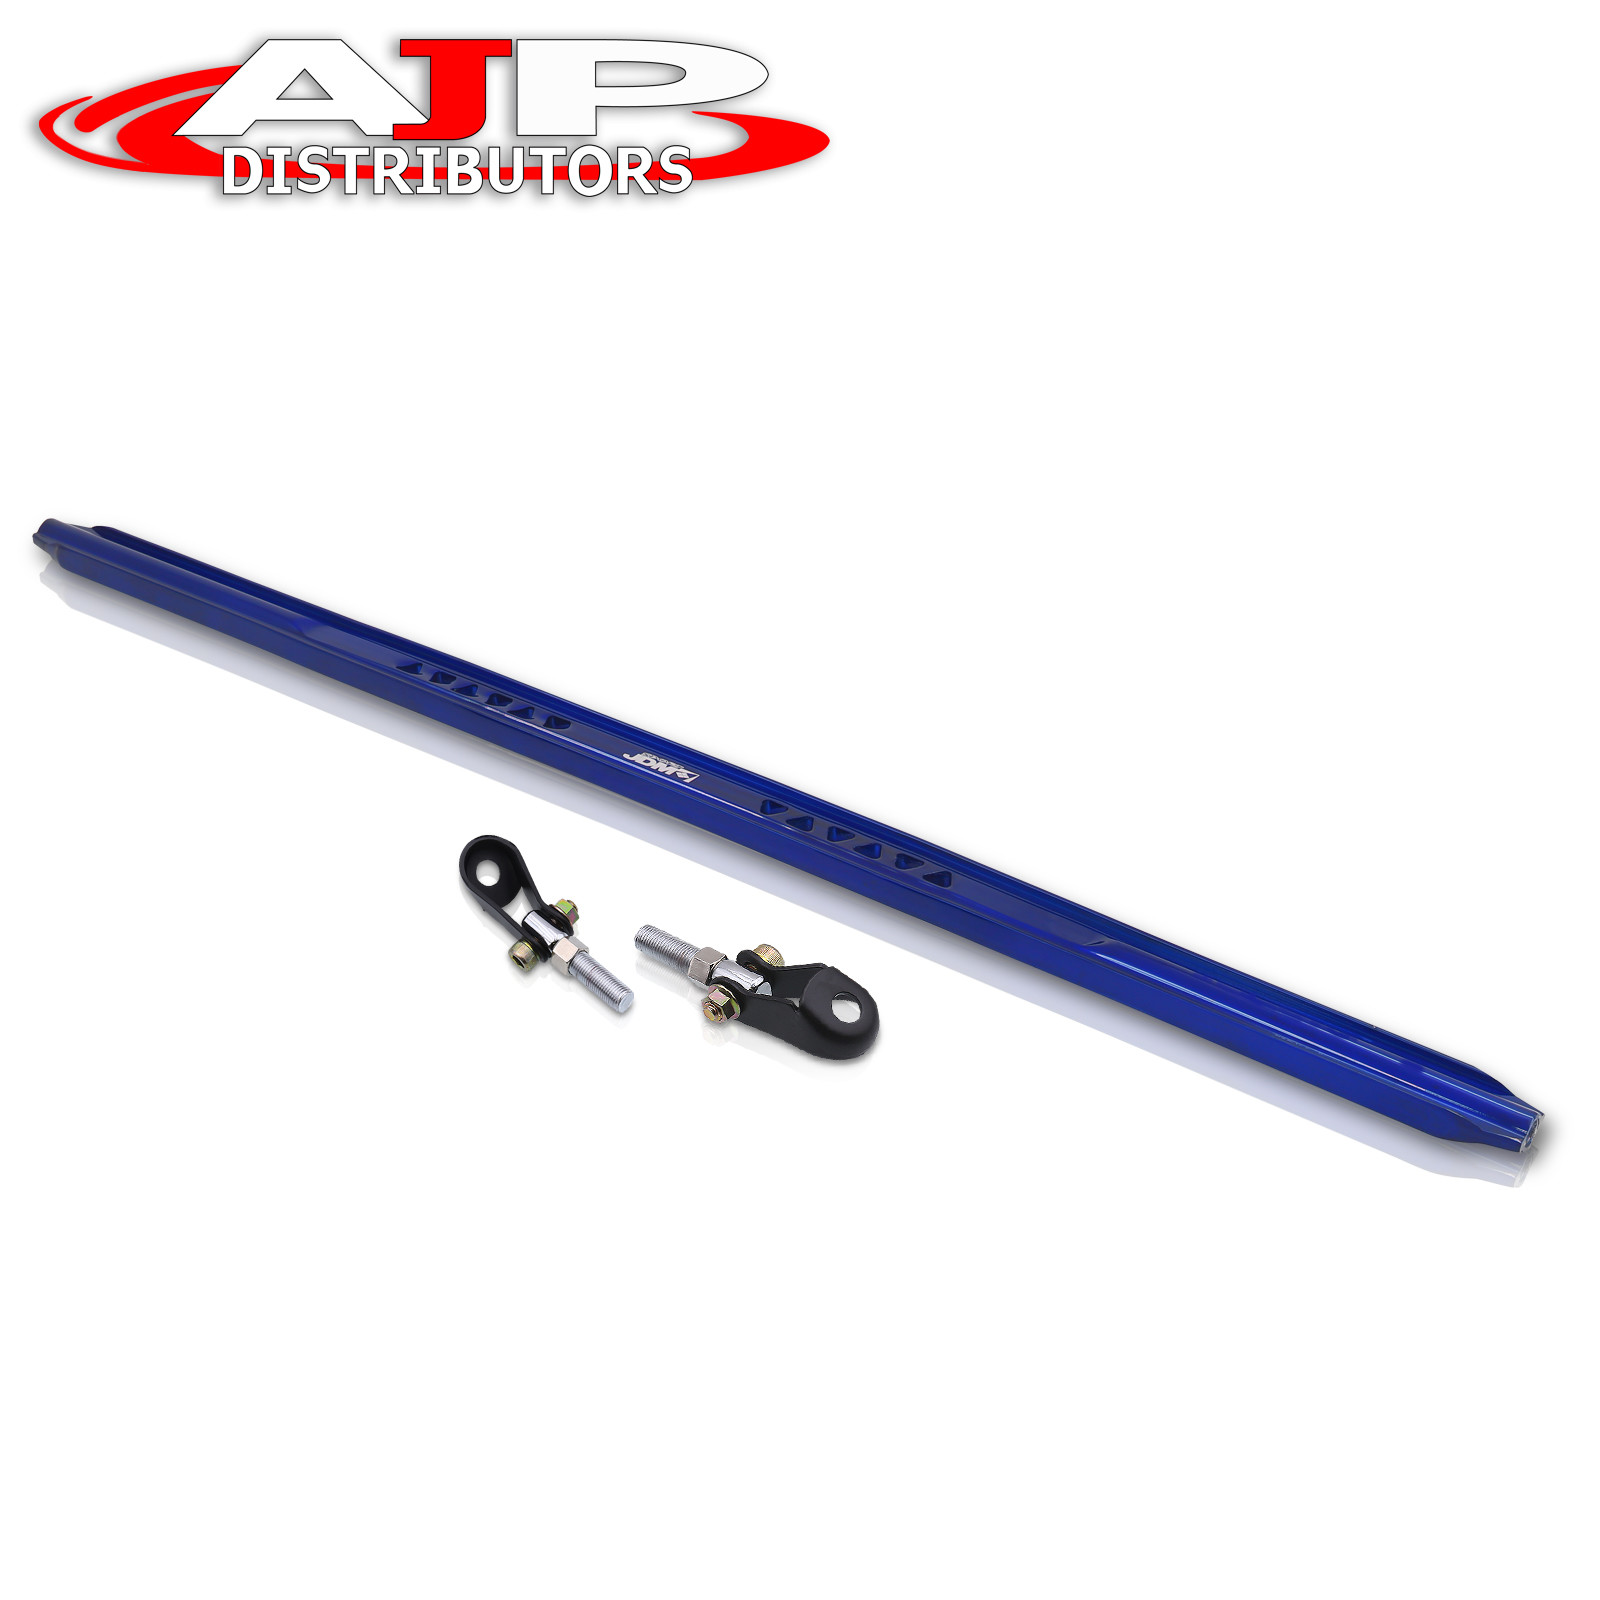 For Toyota Corolla Aluminum Jdm Sport Rear Upper C-Pillar Bar Strut Brace Tower Frame Bar Blue